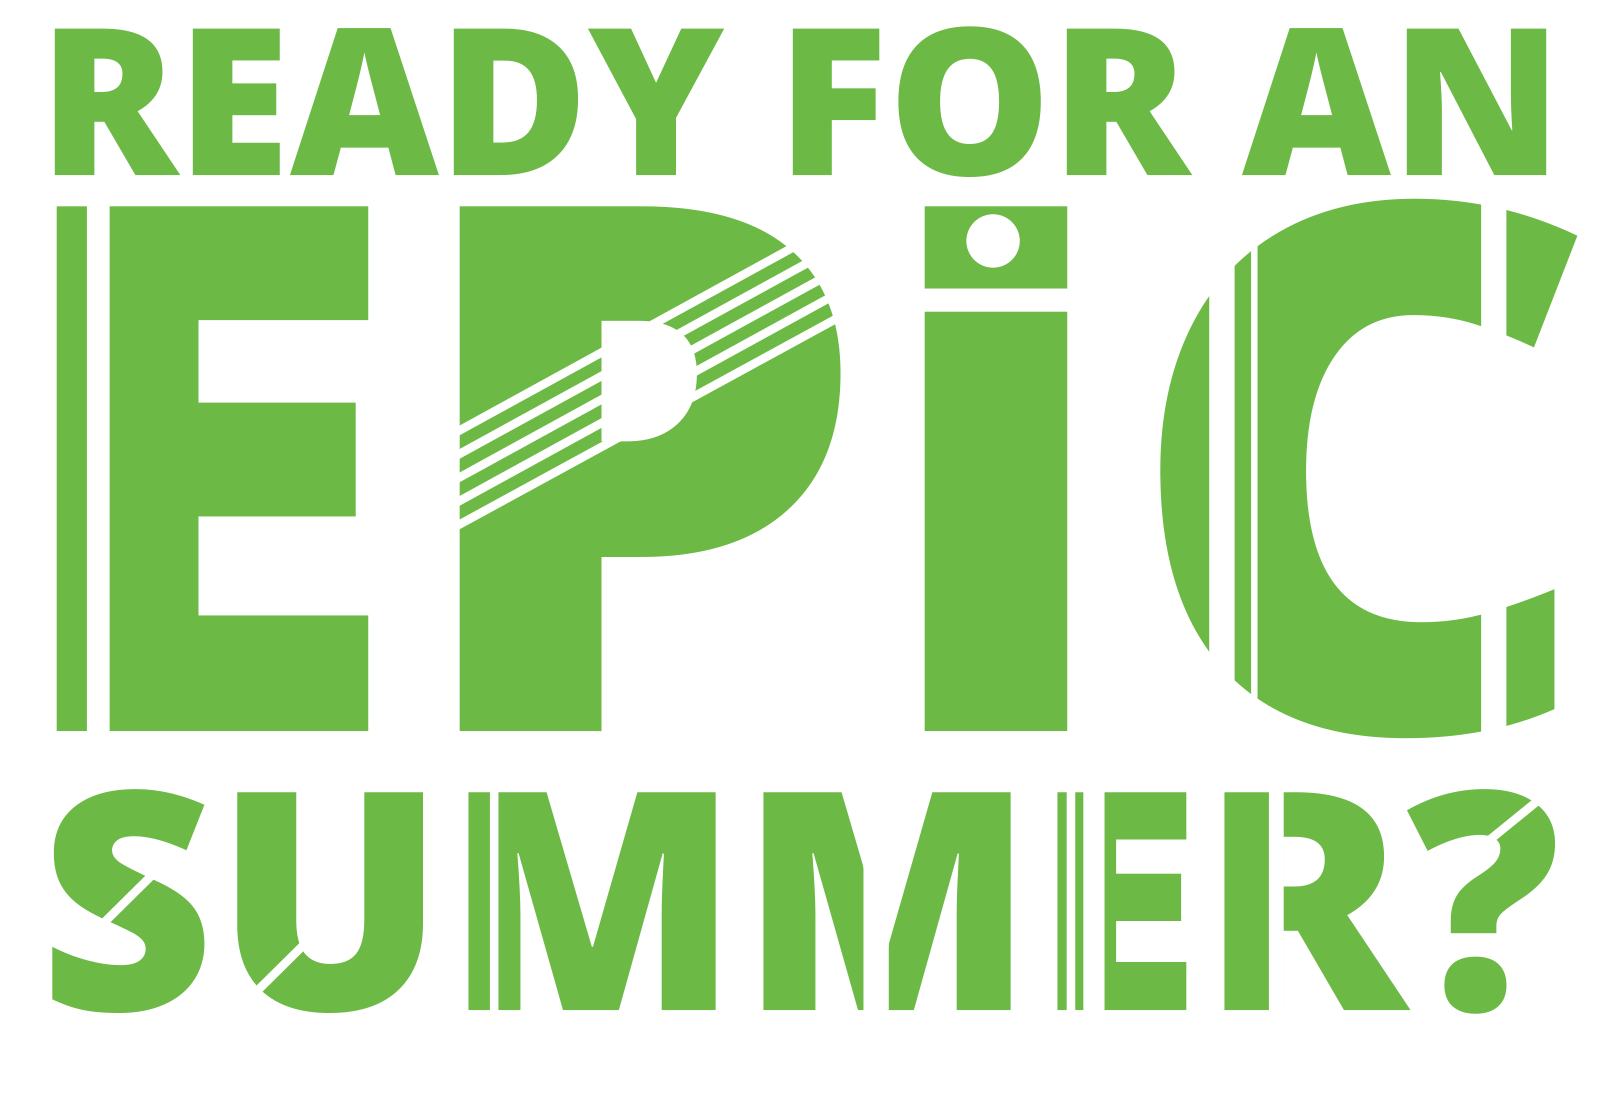 Ready for an epic summer?